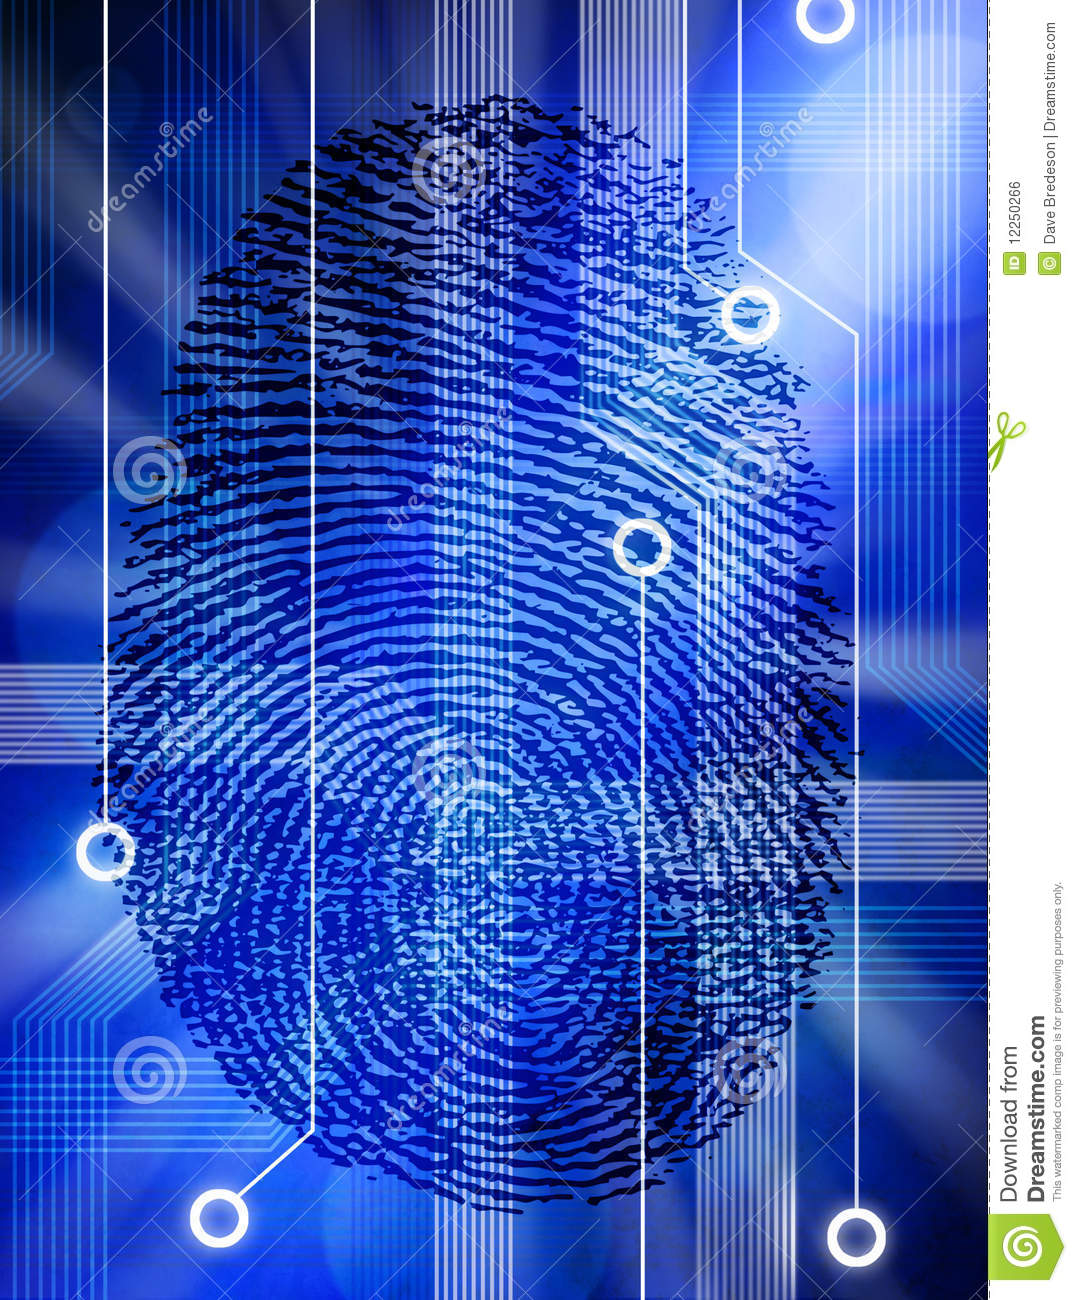 computer fingerprint technology security identity royalty